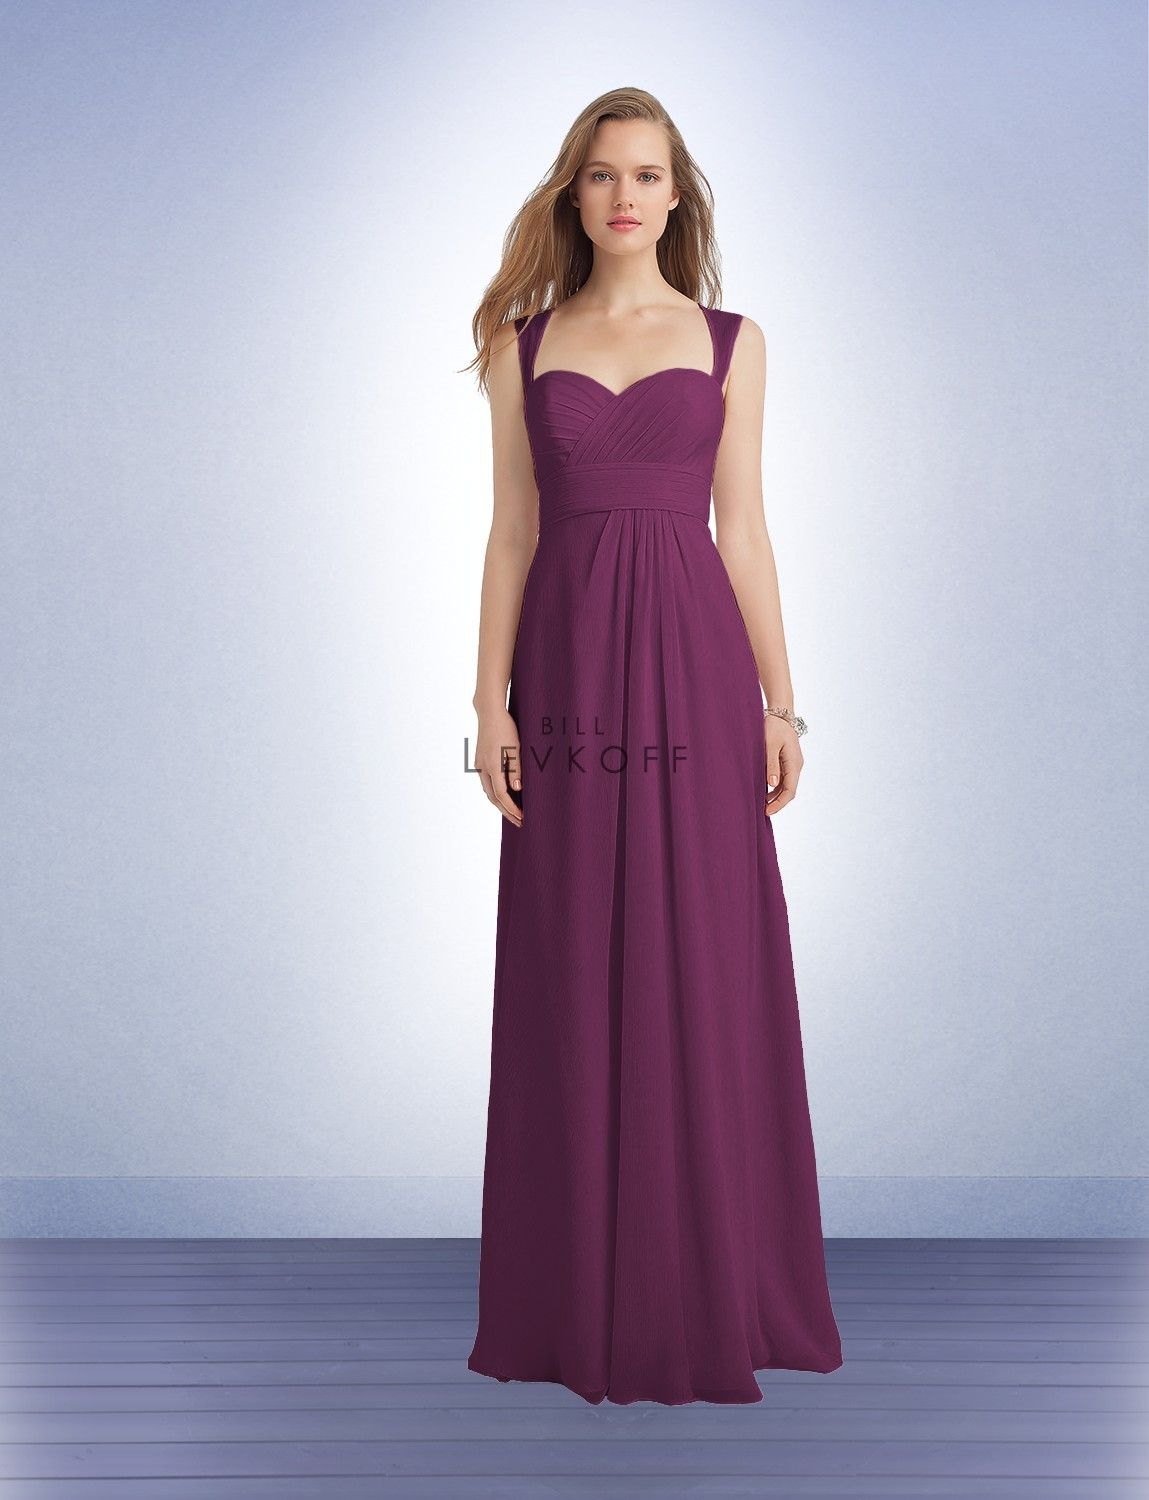 5c2b4a42a293 Bill Levkoff Style 1138 Bridesmaid Dresses – Fashion dresses